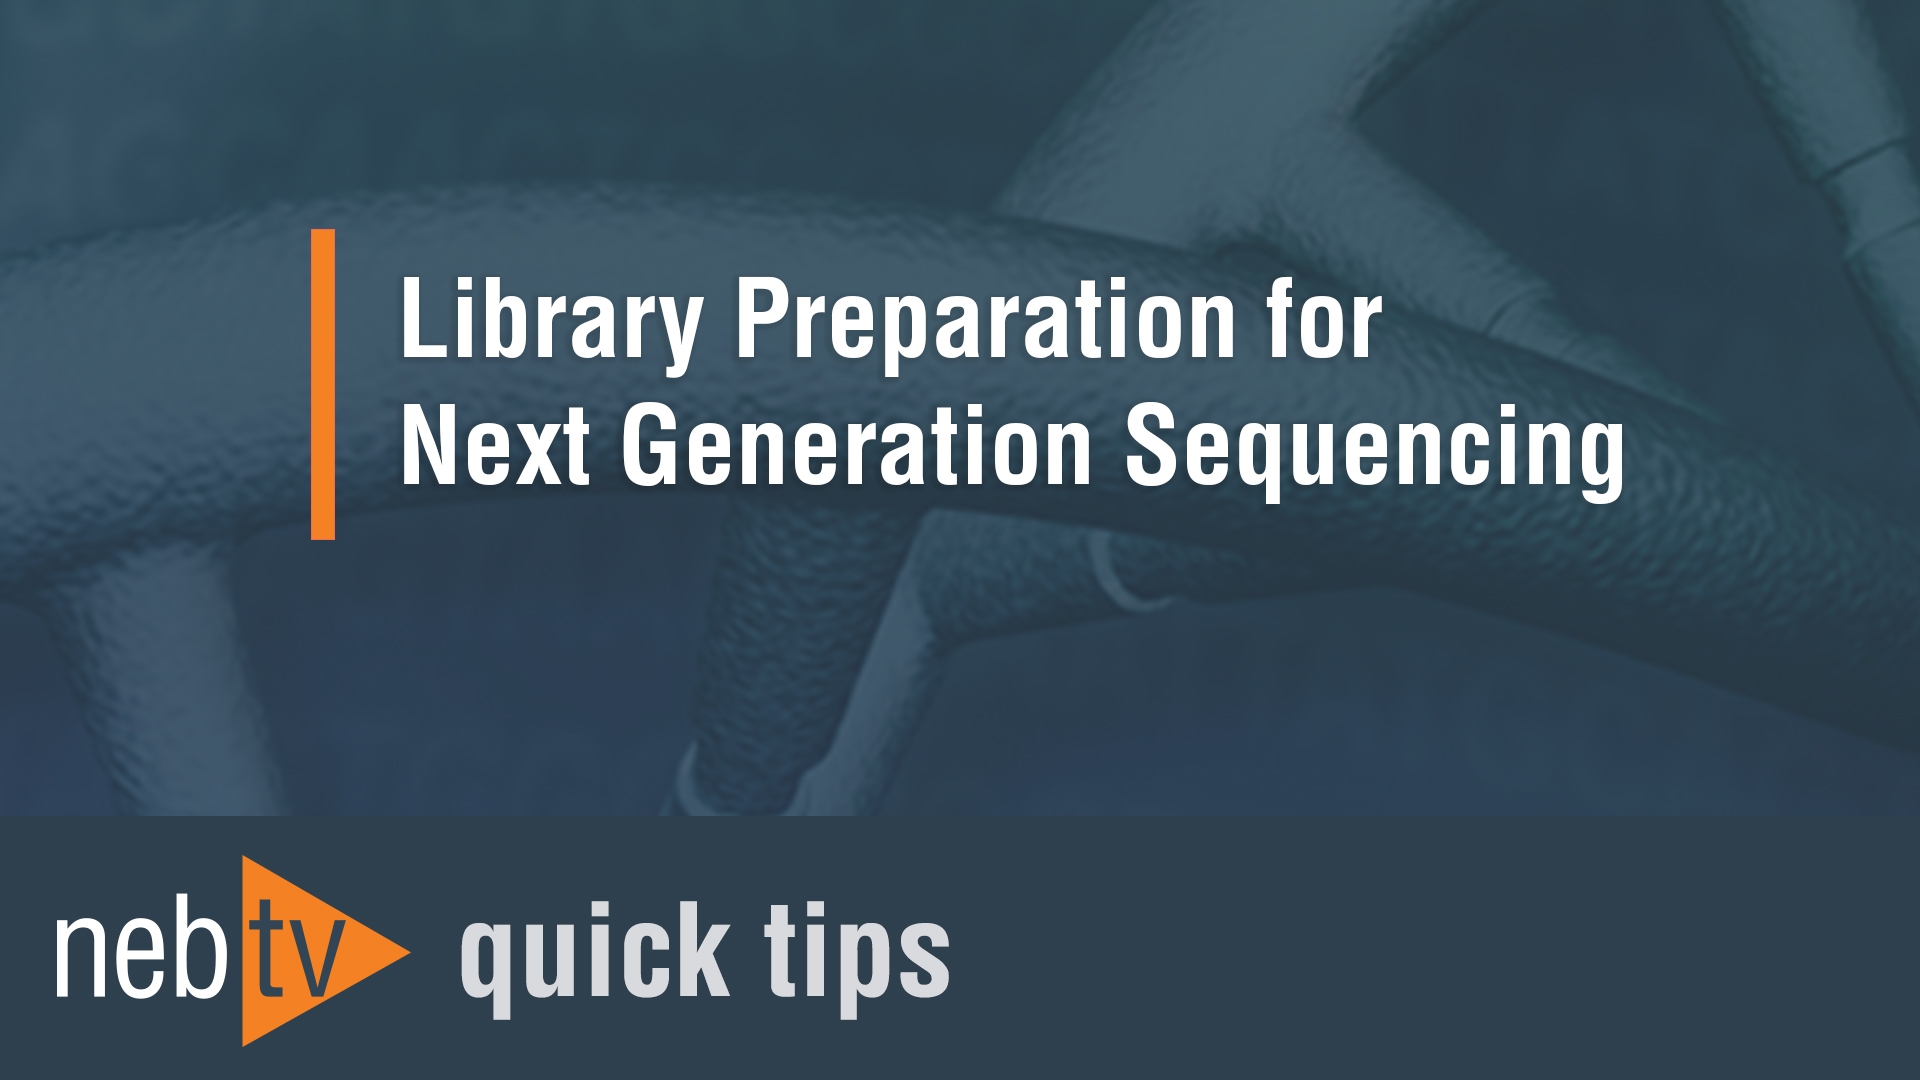 NEBTV_Library-Preparation-for-Next-Generation-Sequencing_1920